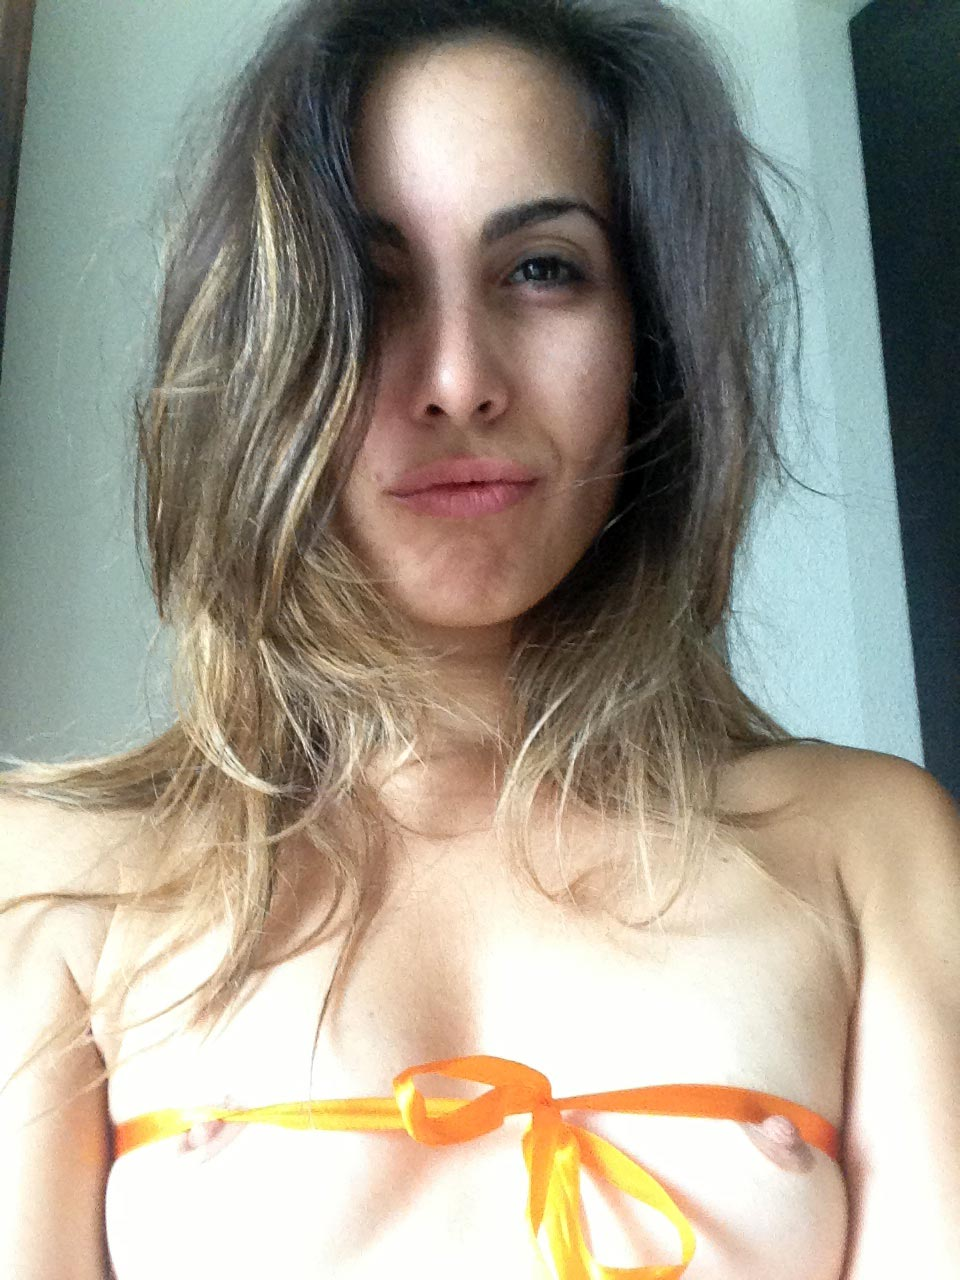 Carly Pope Sex Tape actress carly pope nude leaked pics — 'suits' star showed